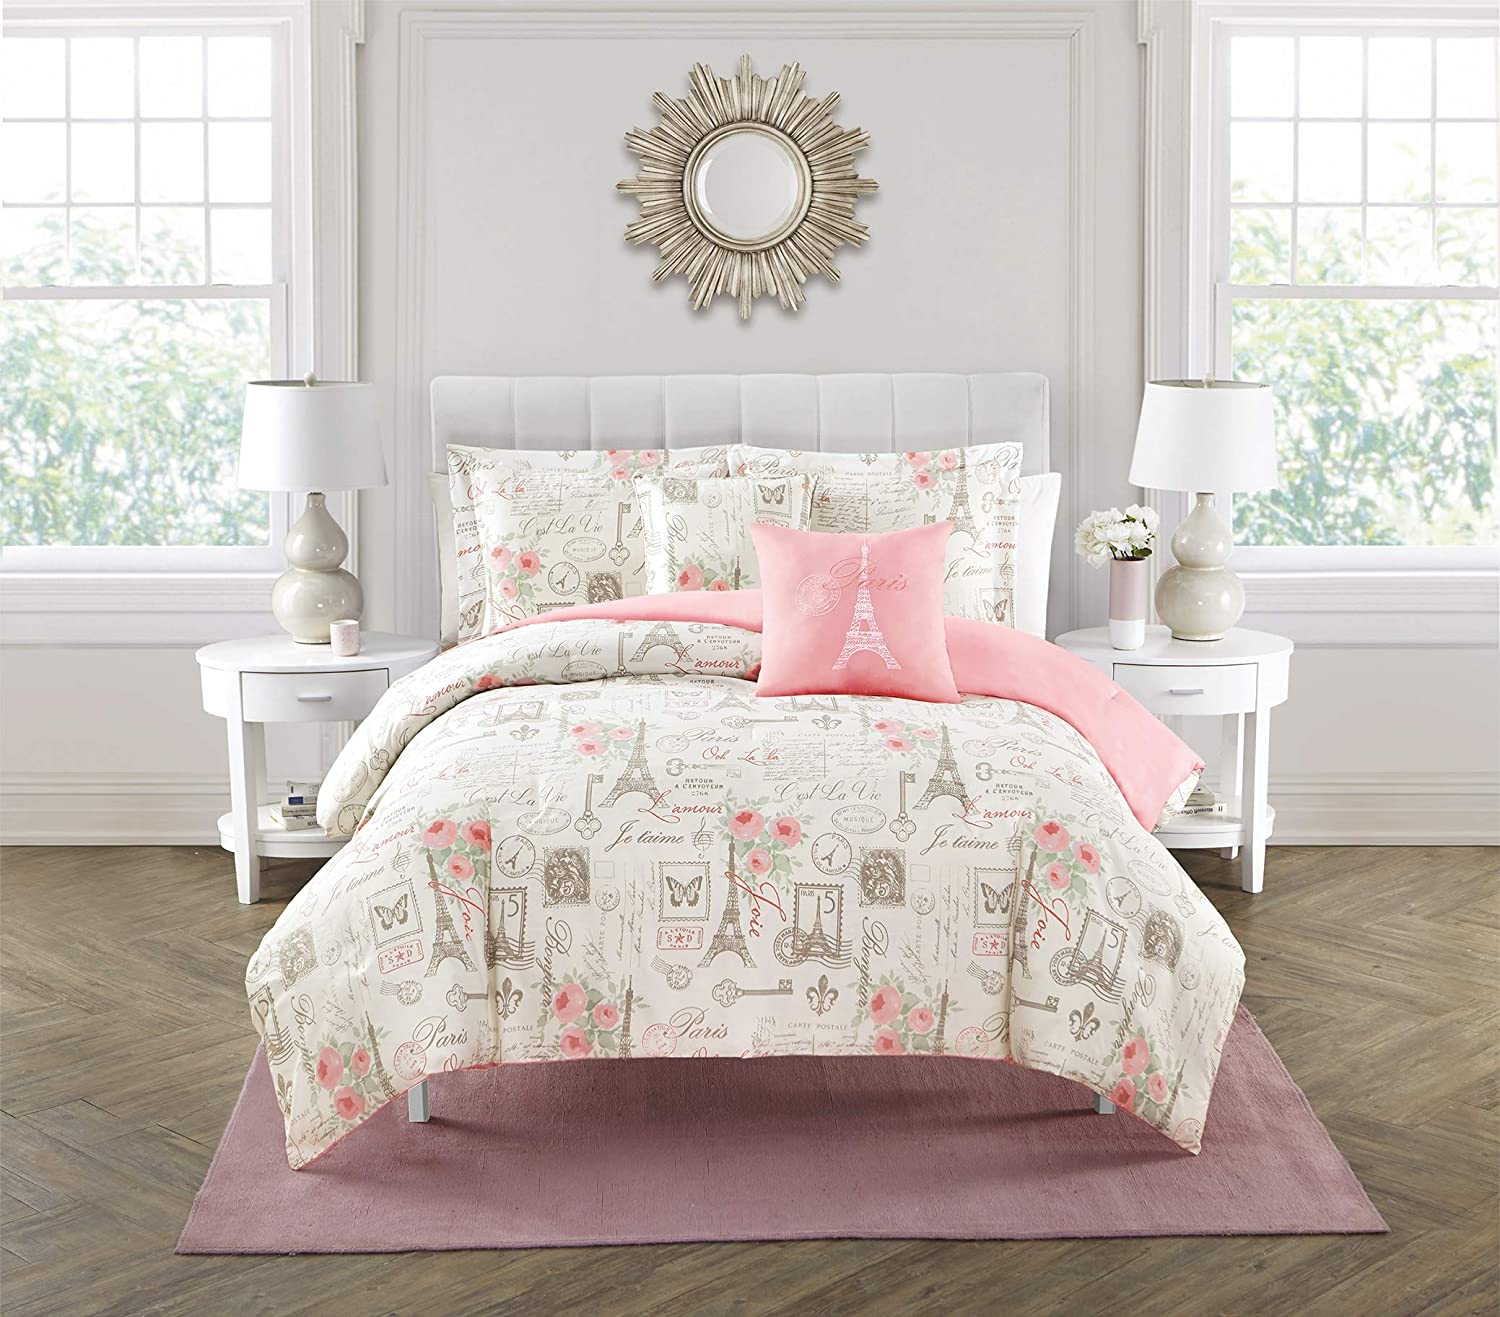 City of Romance 5-Piece Comforter Set, Super Soft, Paris decor for bedroom, Eiffel Towers, Watercolor Floral Bouquets, Butterflies, Reversible Bedding, French Country Pattern, Pink/White, King